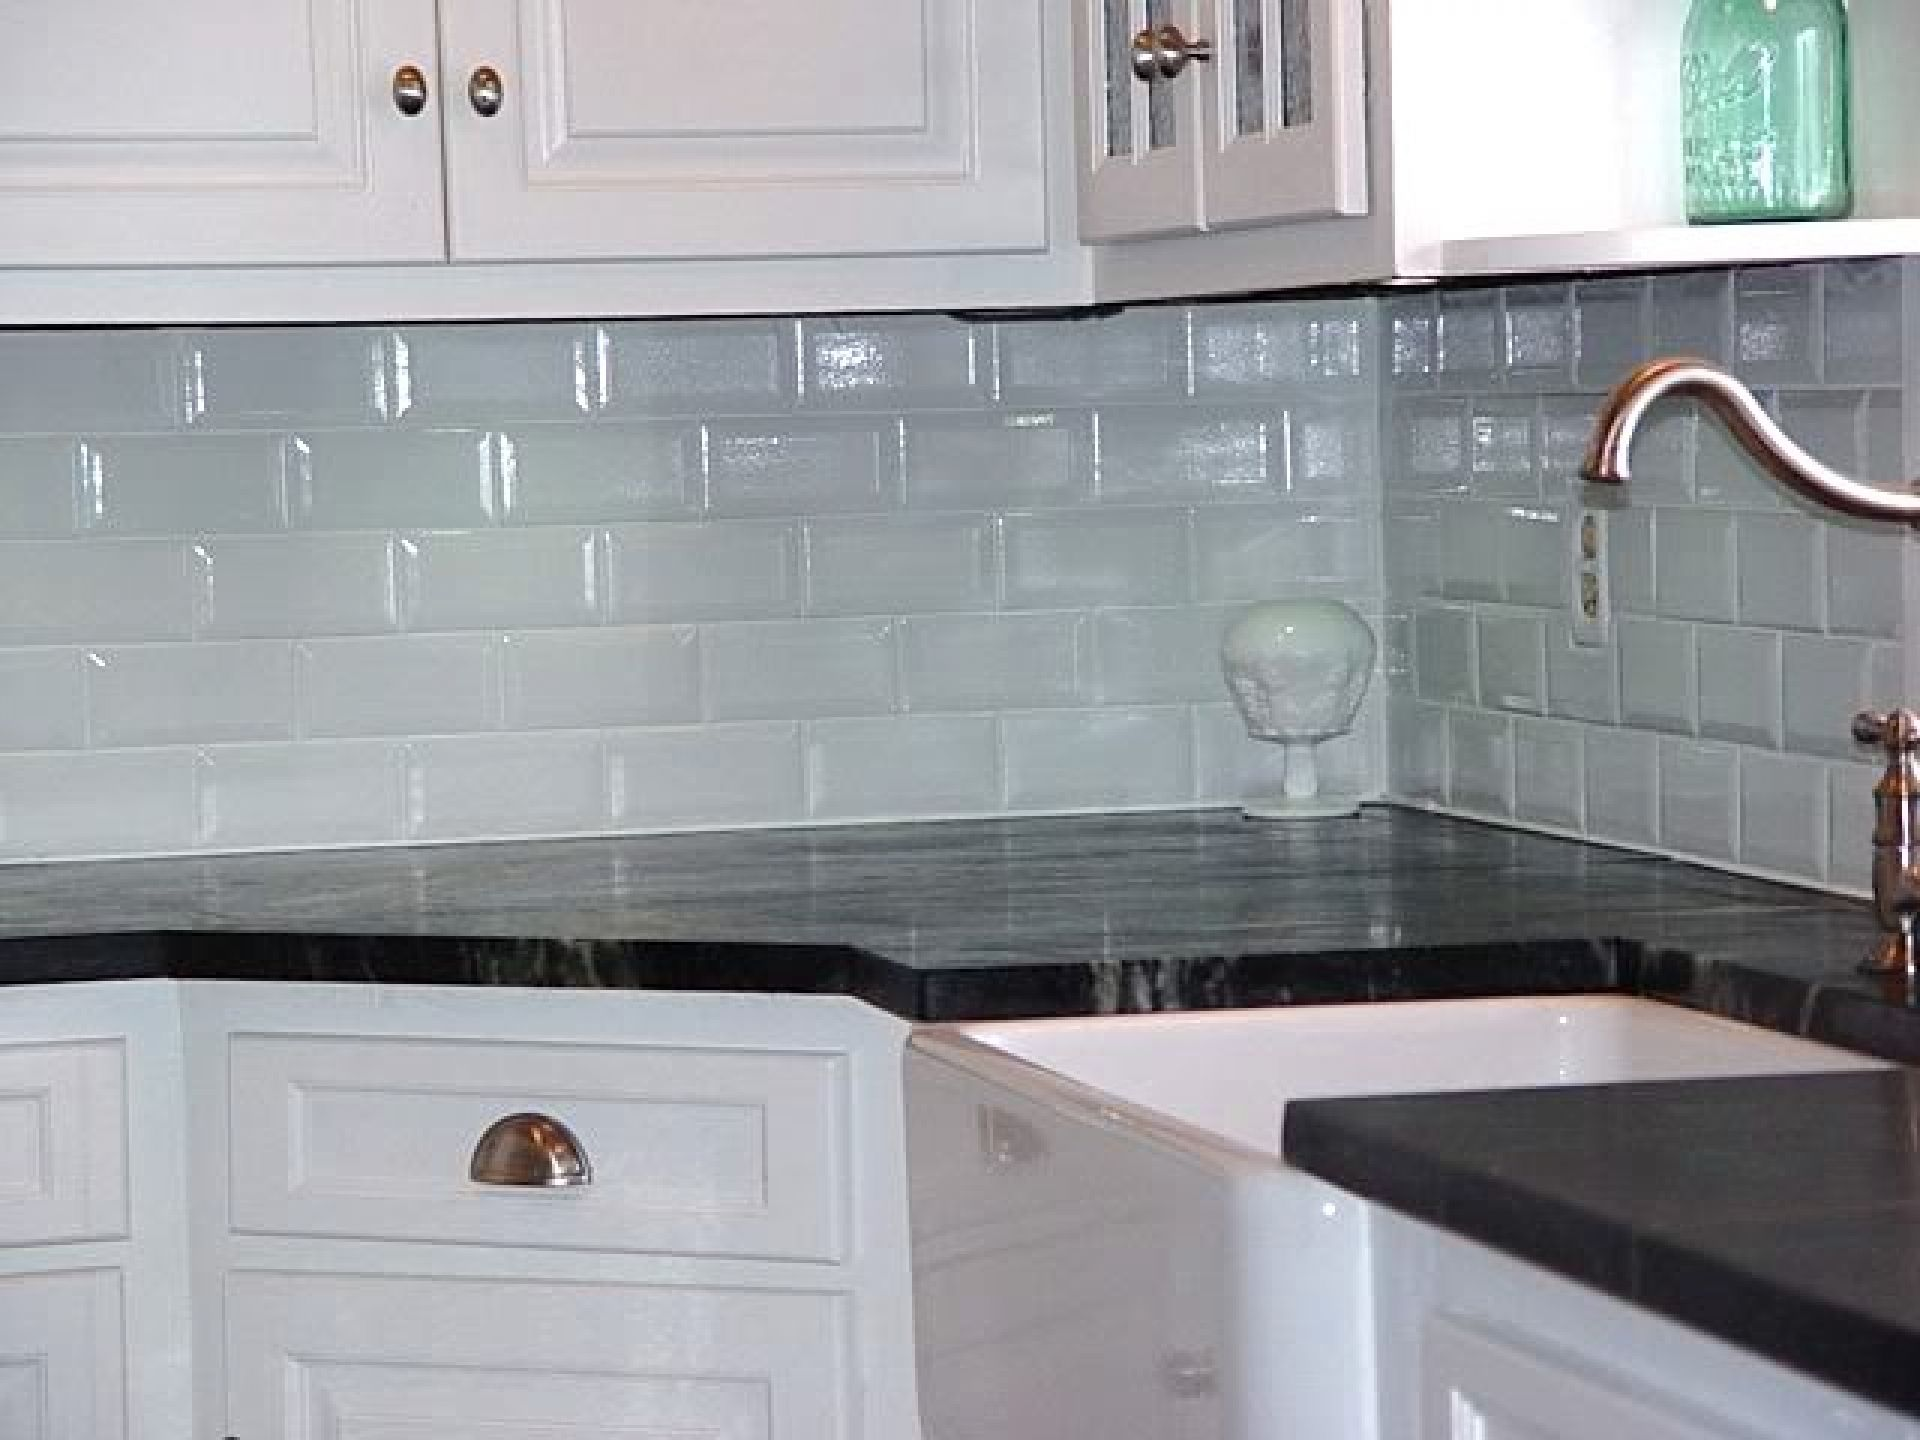 Easy kitchen backsplash ideas charmlifedynu kitchens white subway tile kitchen backsplash ideas kitchenidease tiles backsplash blue glass subway tile white kitchen design wall tile best free home design dailygadgetfo Choice Image